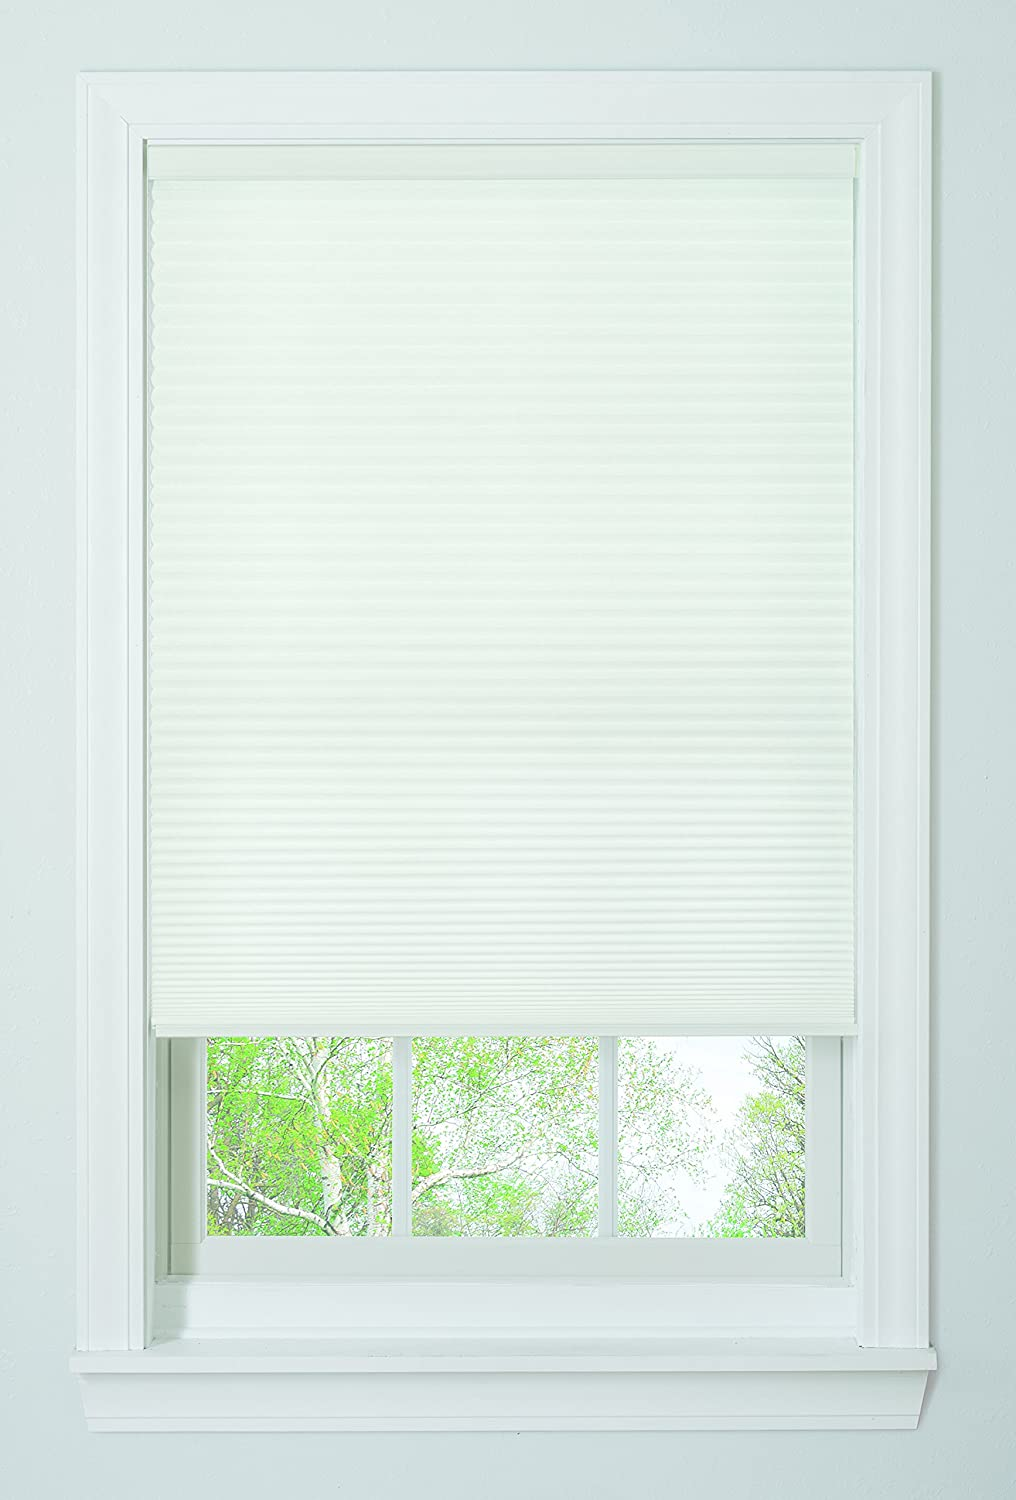 Amazon Com Bali Blinds Cordless Light Filtering Cellular Shade 23 X 64 White Home Kitchen